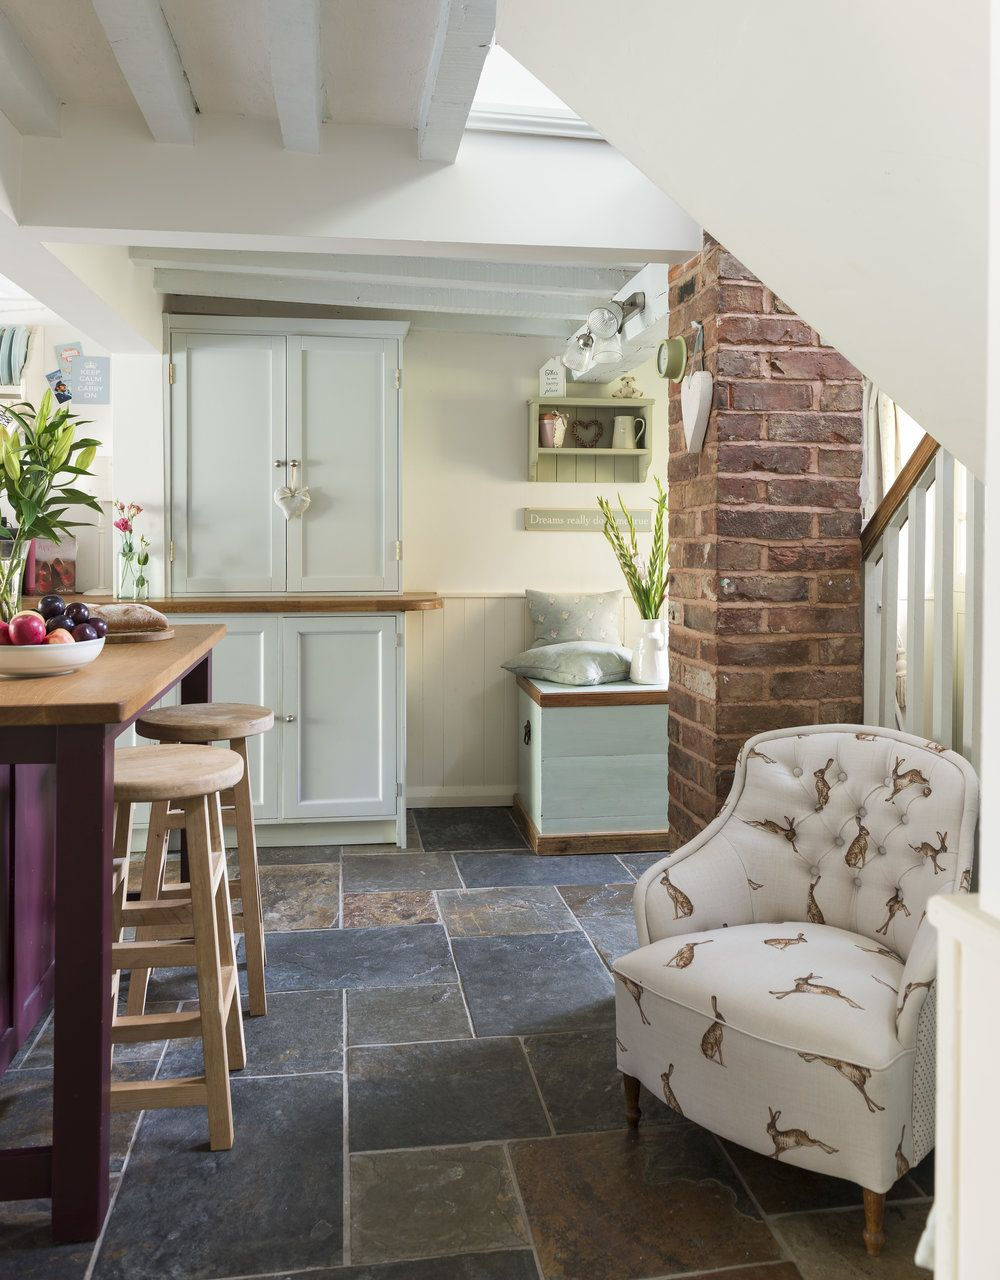 Pin by Dawn jones on home ideas | Home, Country kitchen ...